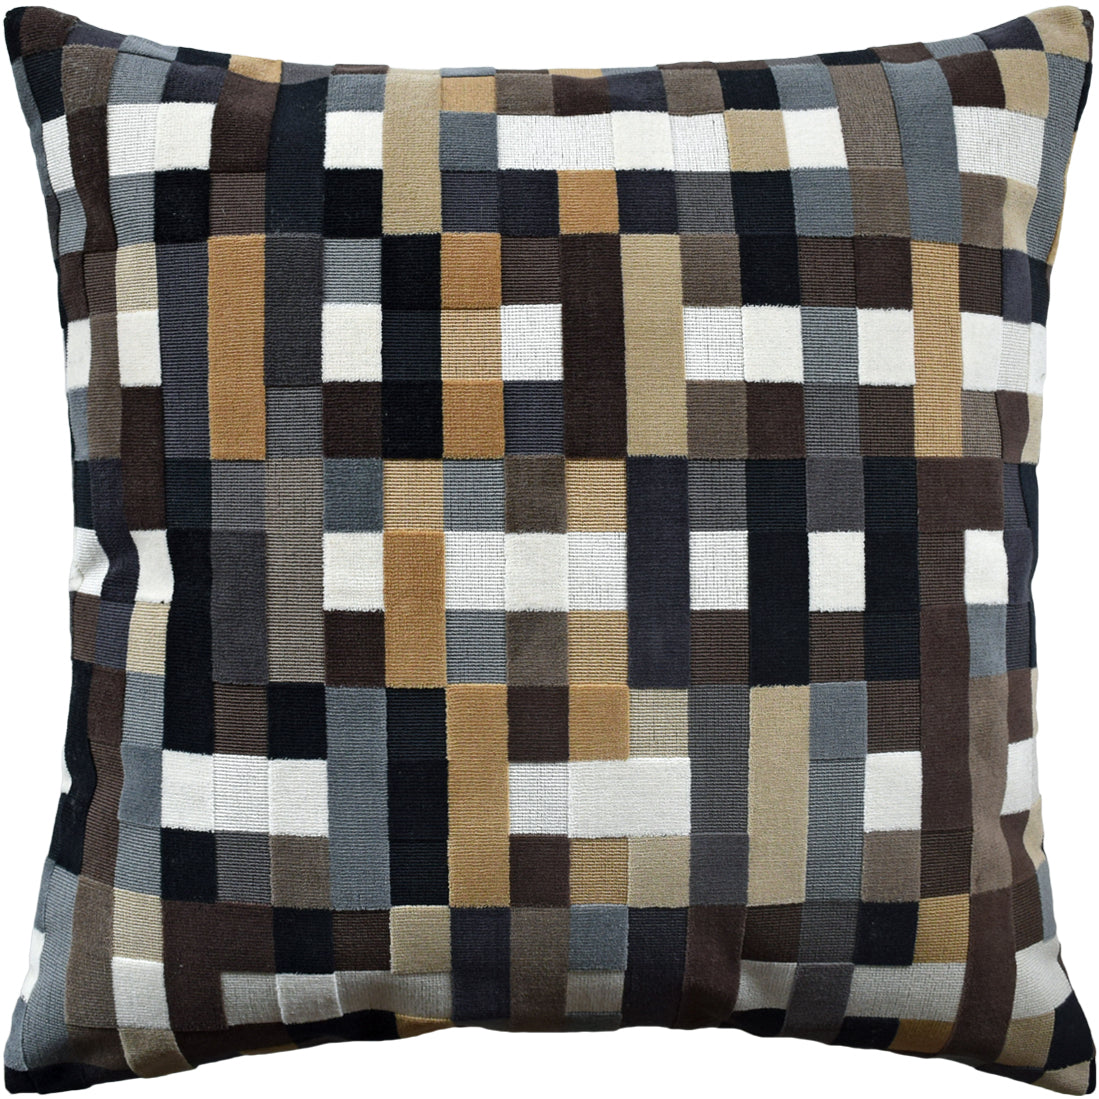 Ryan Studio Abstract Moment Pillow in Onyx